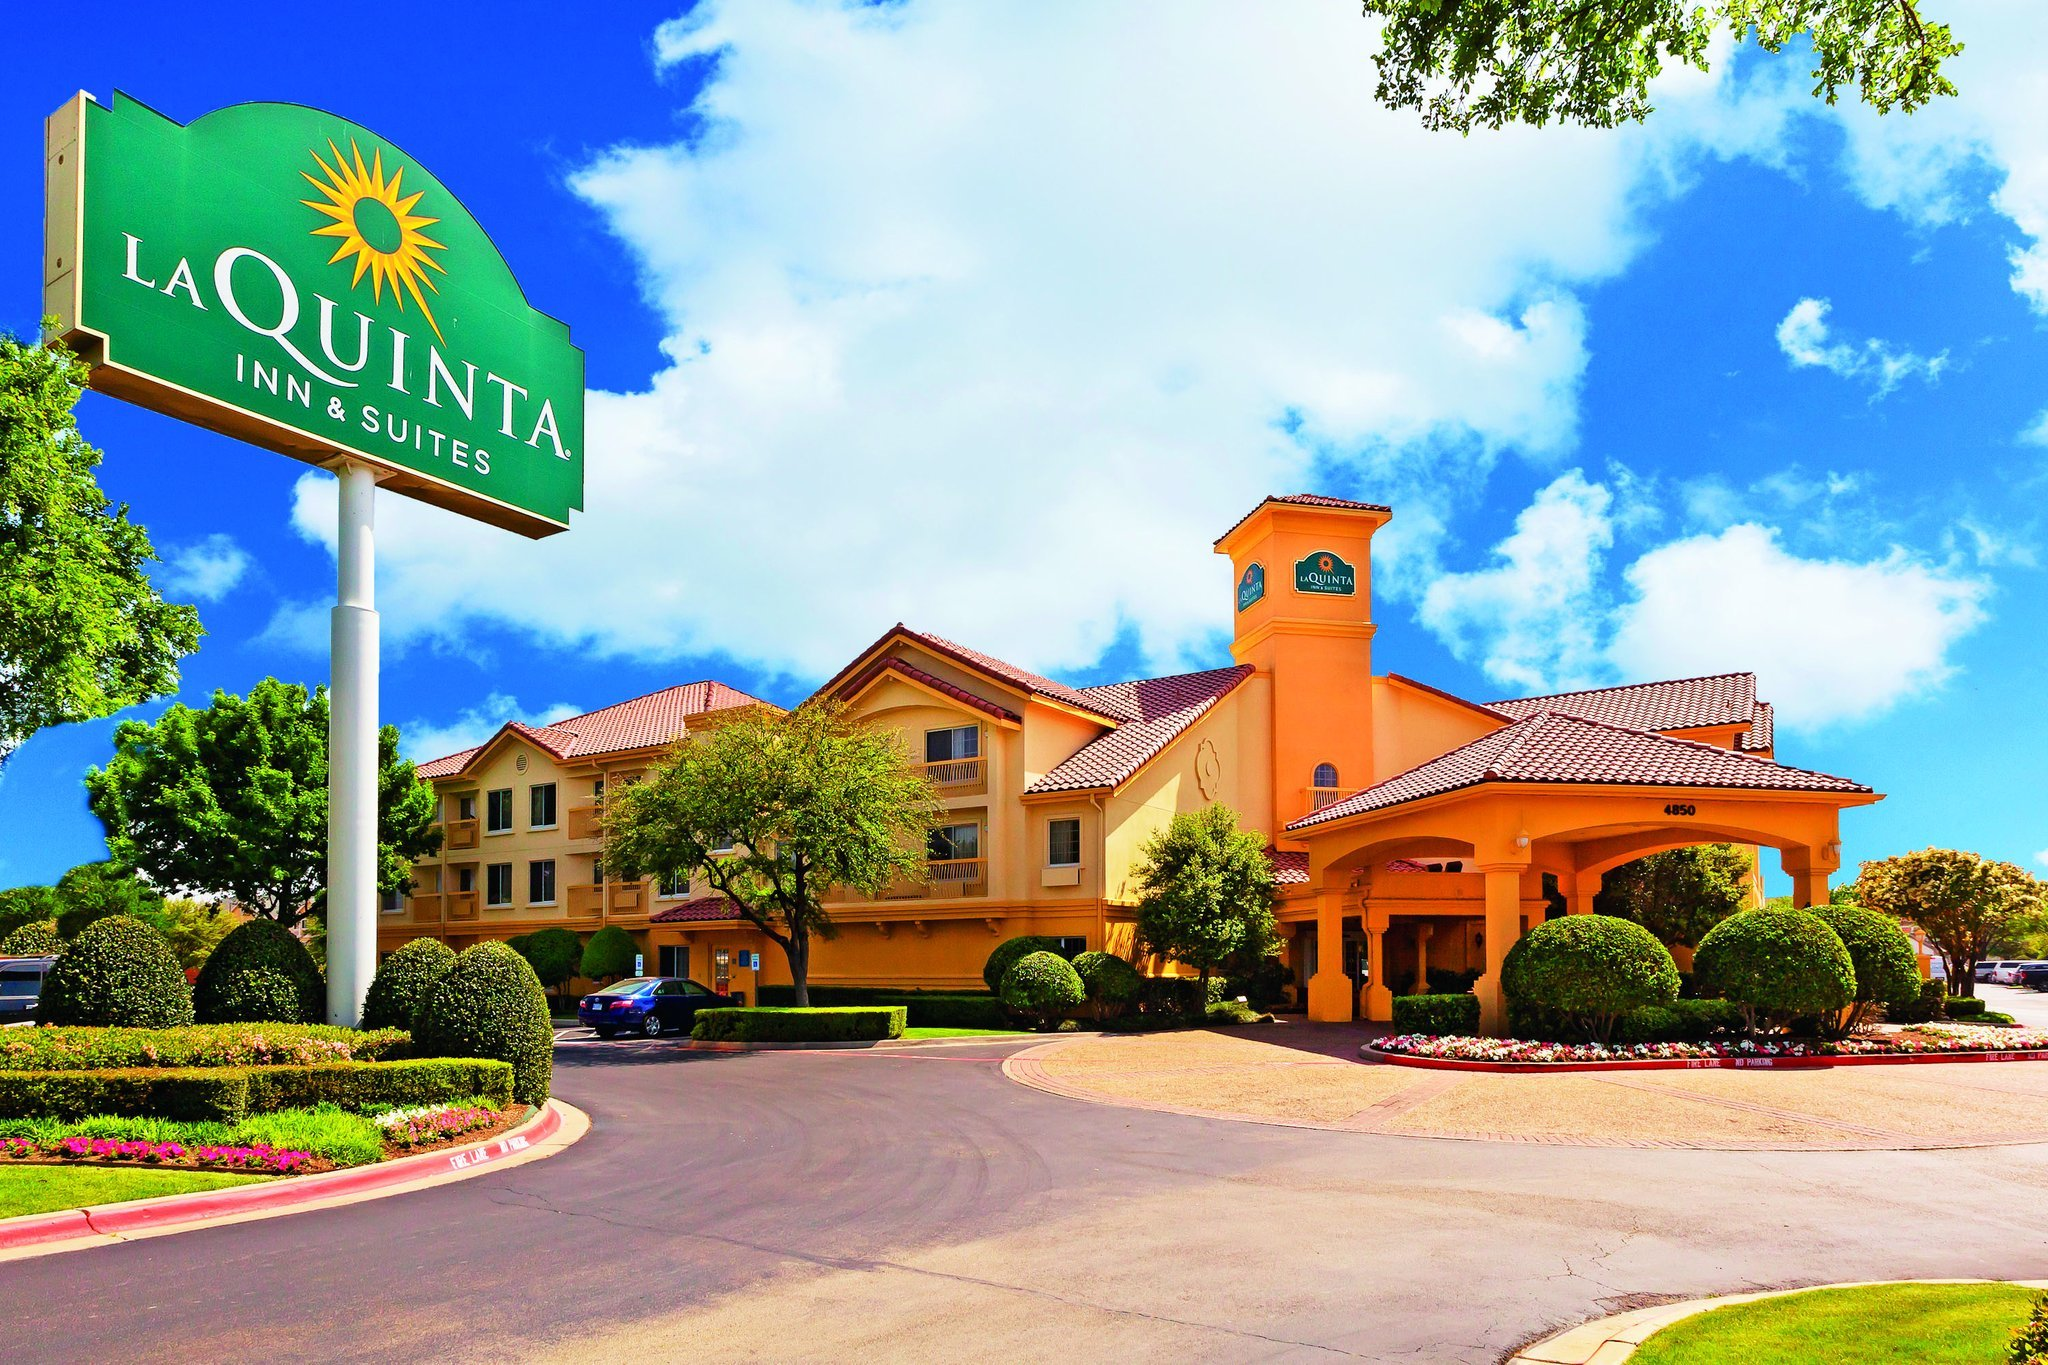 La Quinta Inn & Suites Dallas DFW Airport North